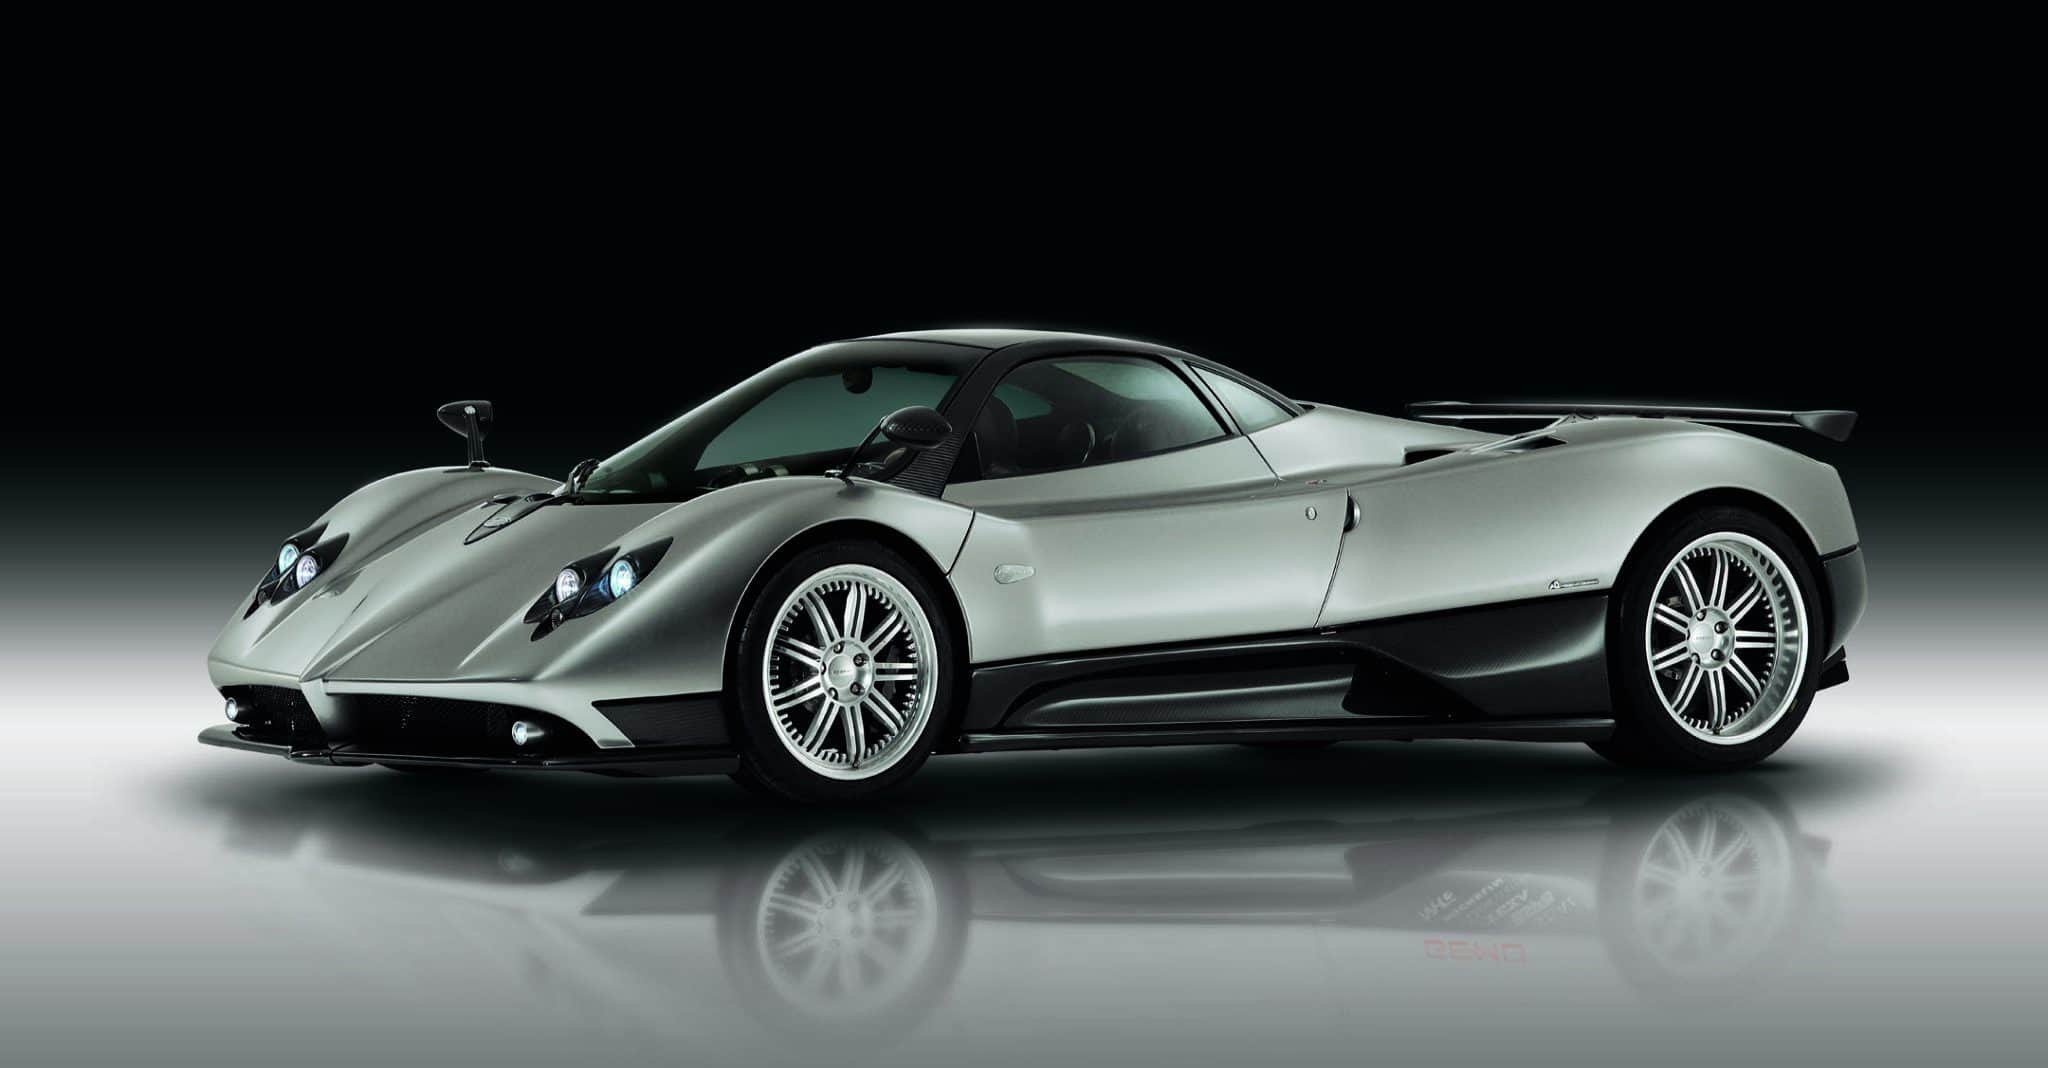 Historie automobilky Pagani